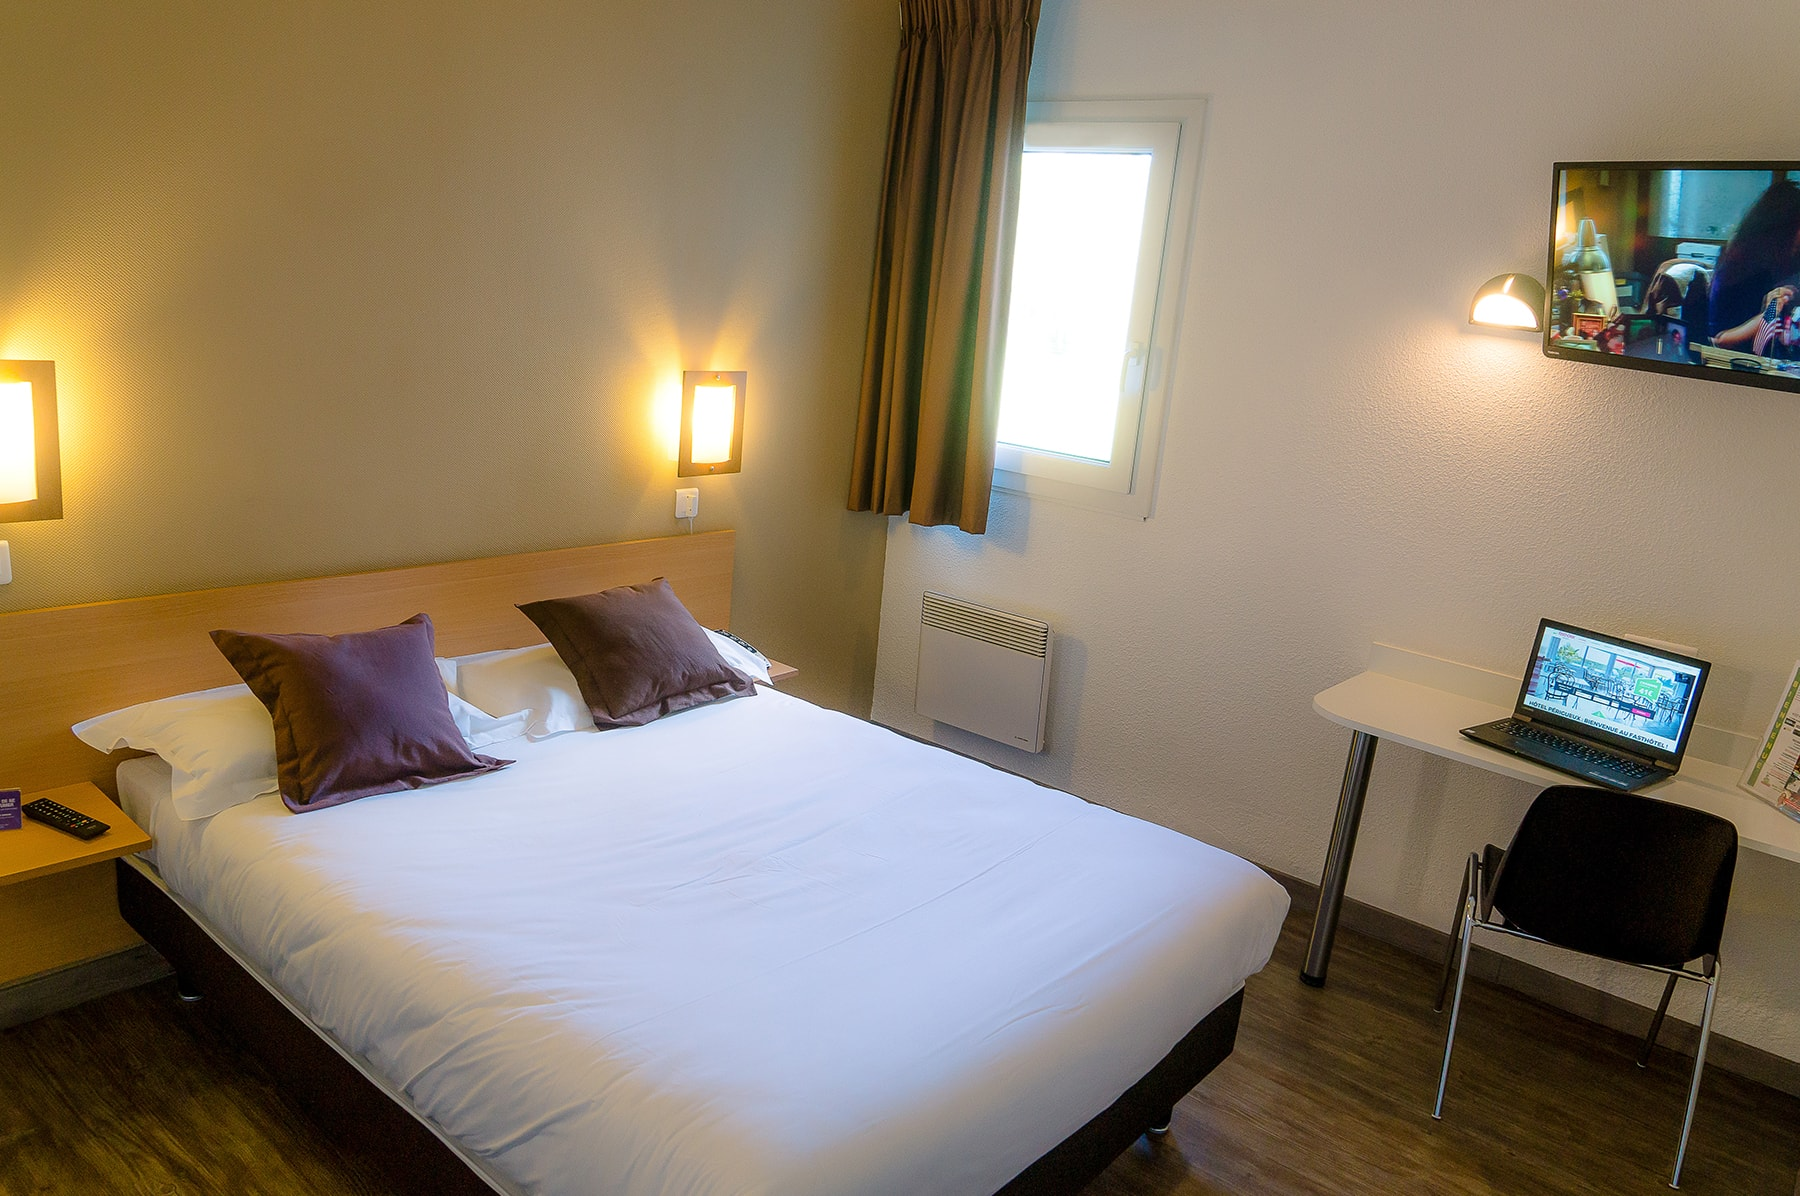 Chambre Double Fasthotel Perigueux03 Min